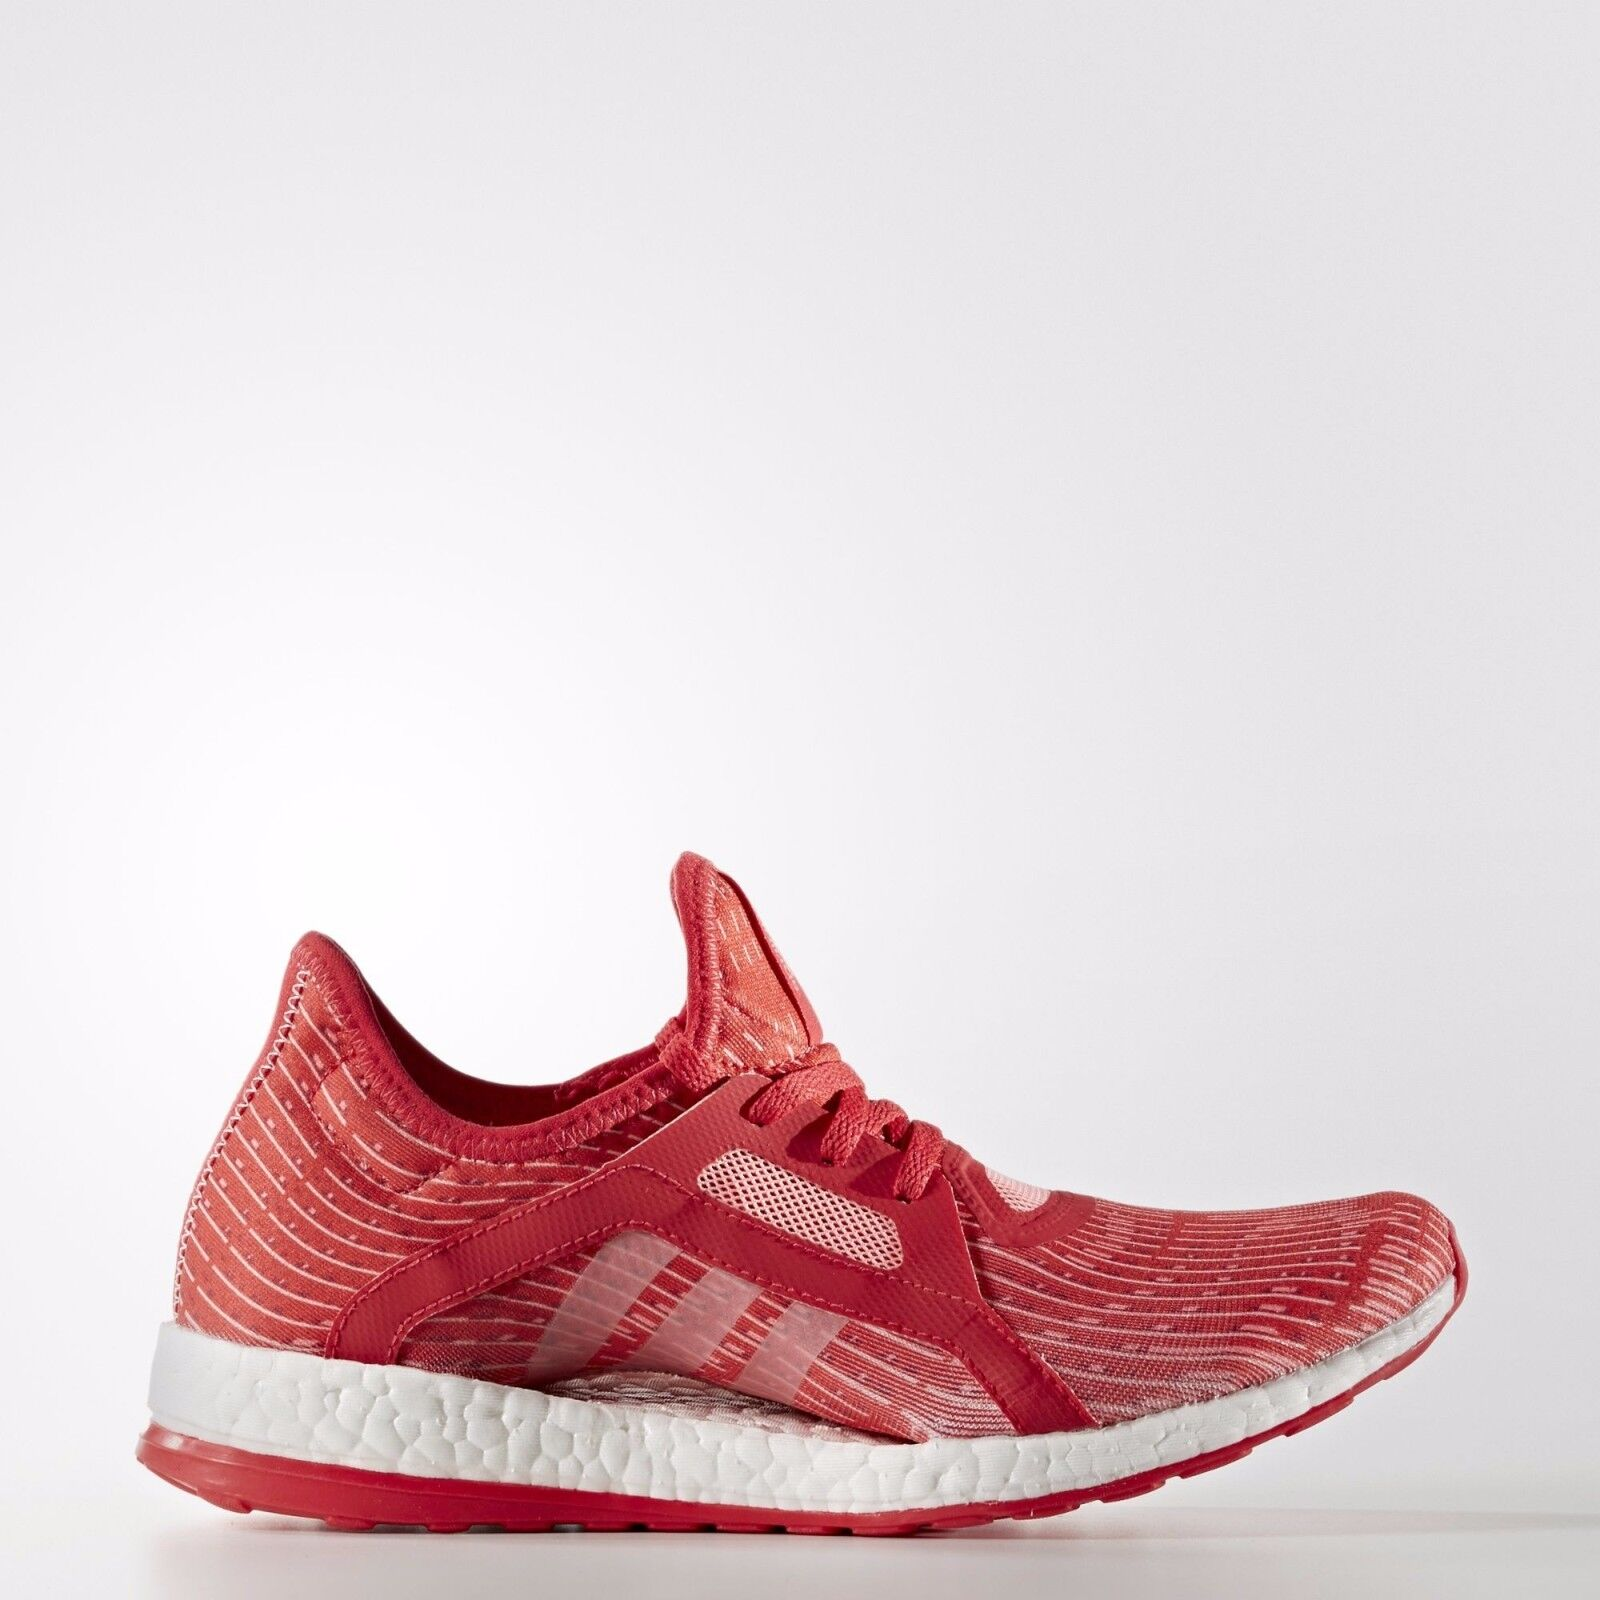 ADIDAS SHOES WOMENS PURE BOOST X ATR ULTRA NMD RED RUN TRAINING NEW AQ3399